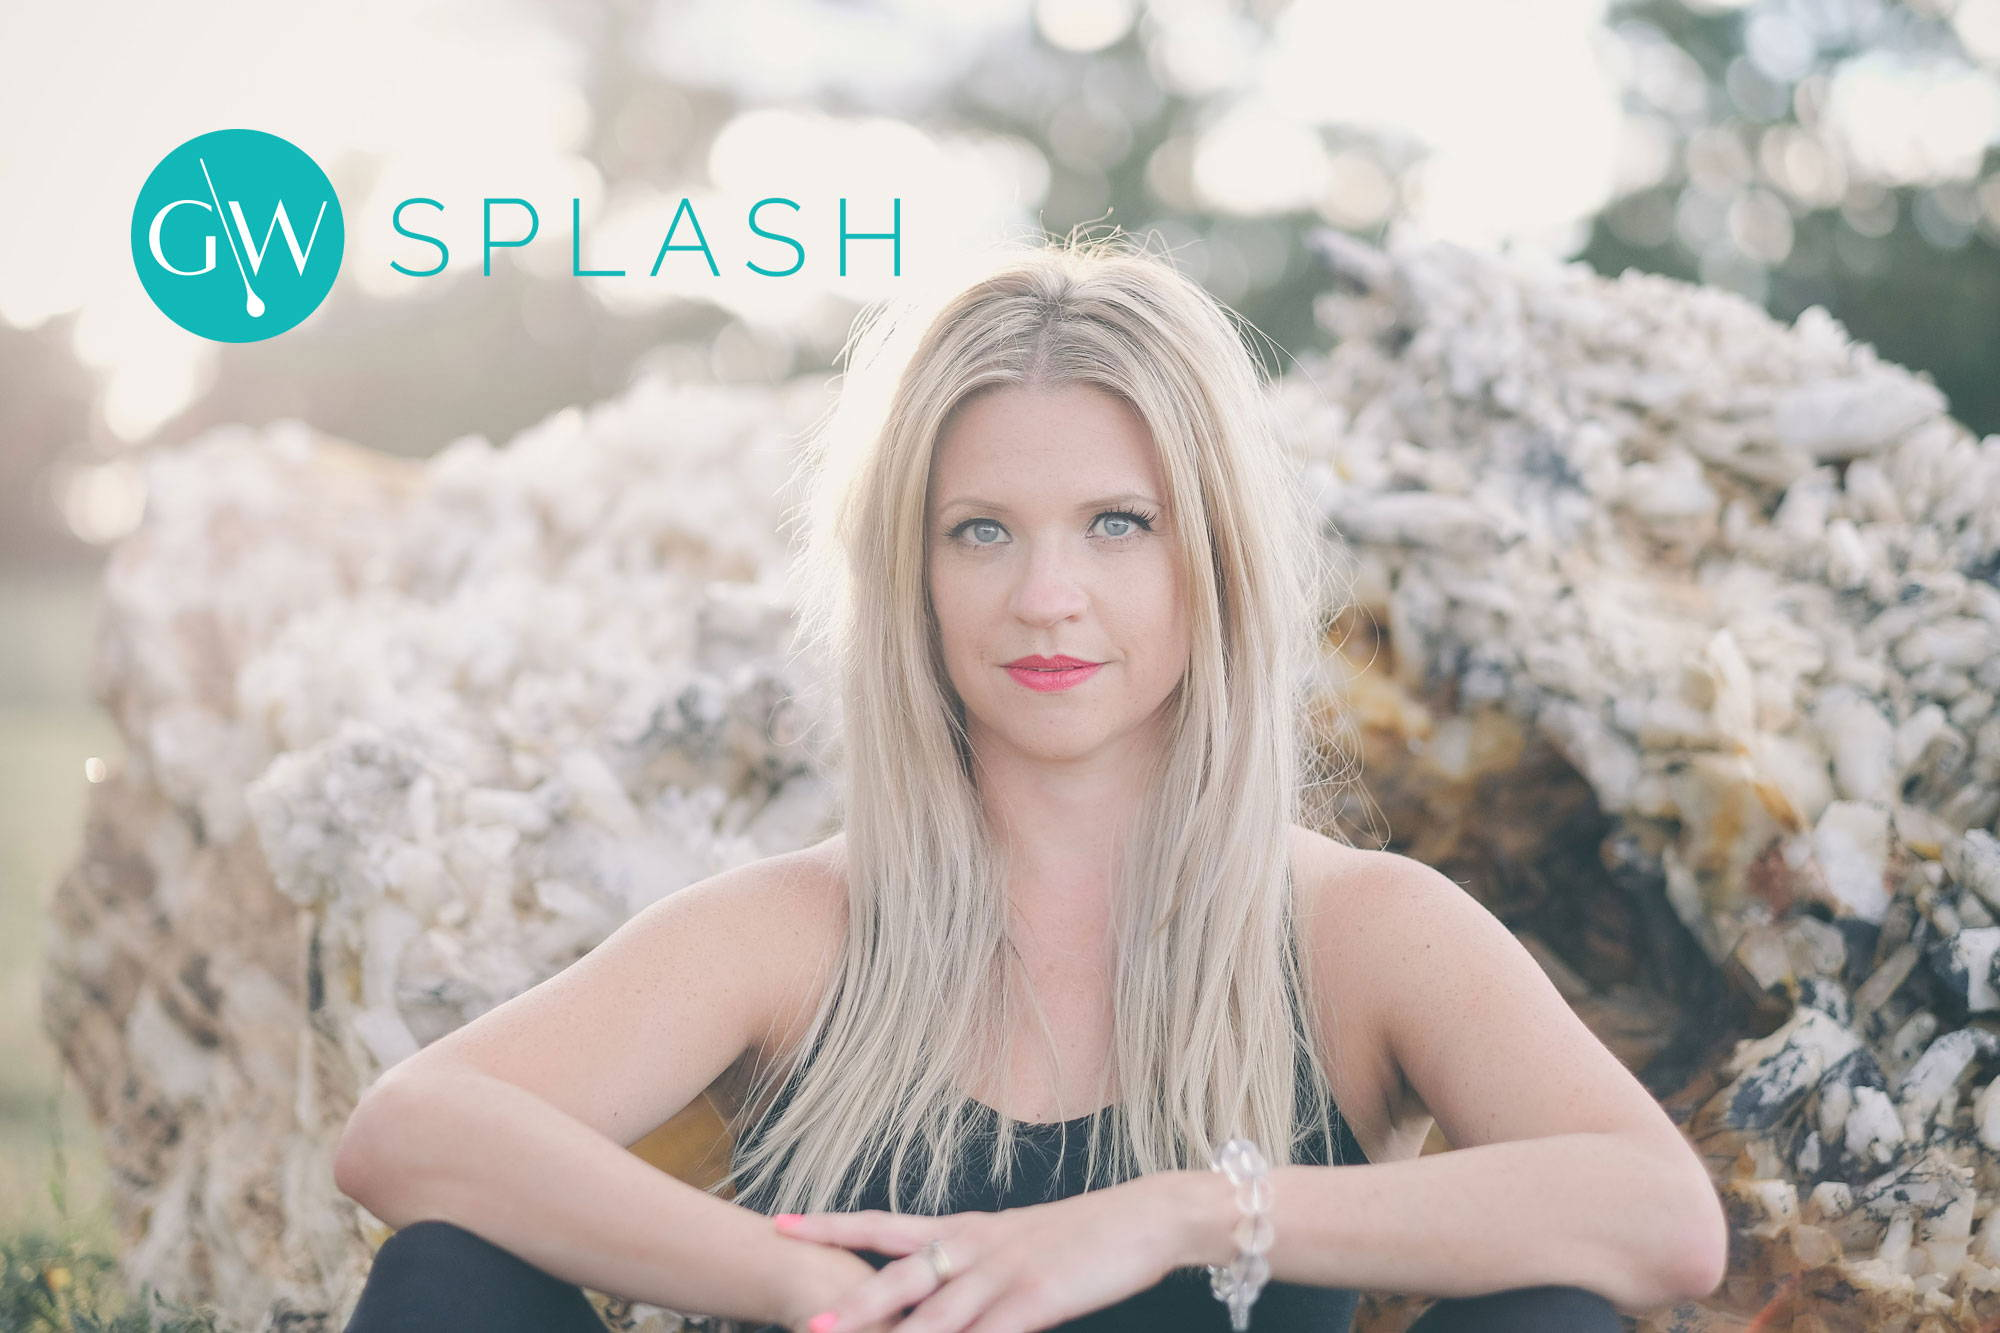 The Splash Interview with Colleen McCann